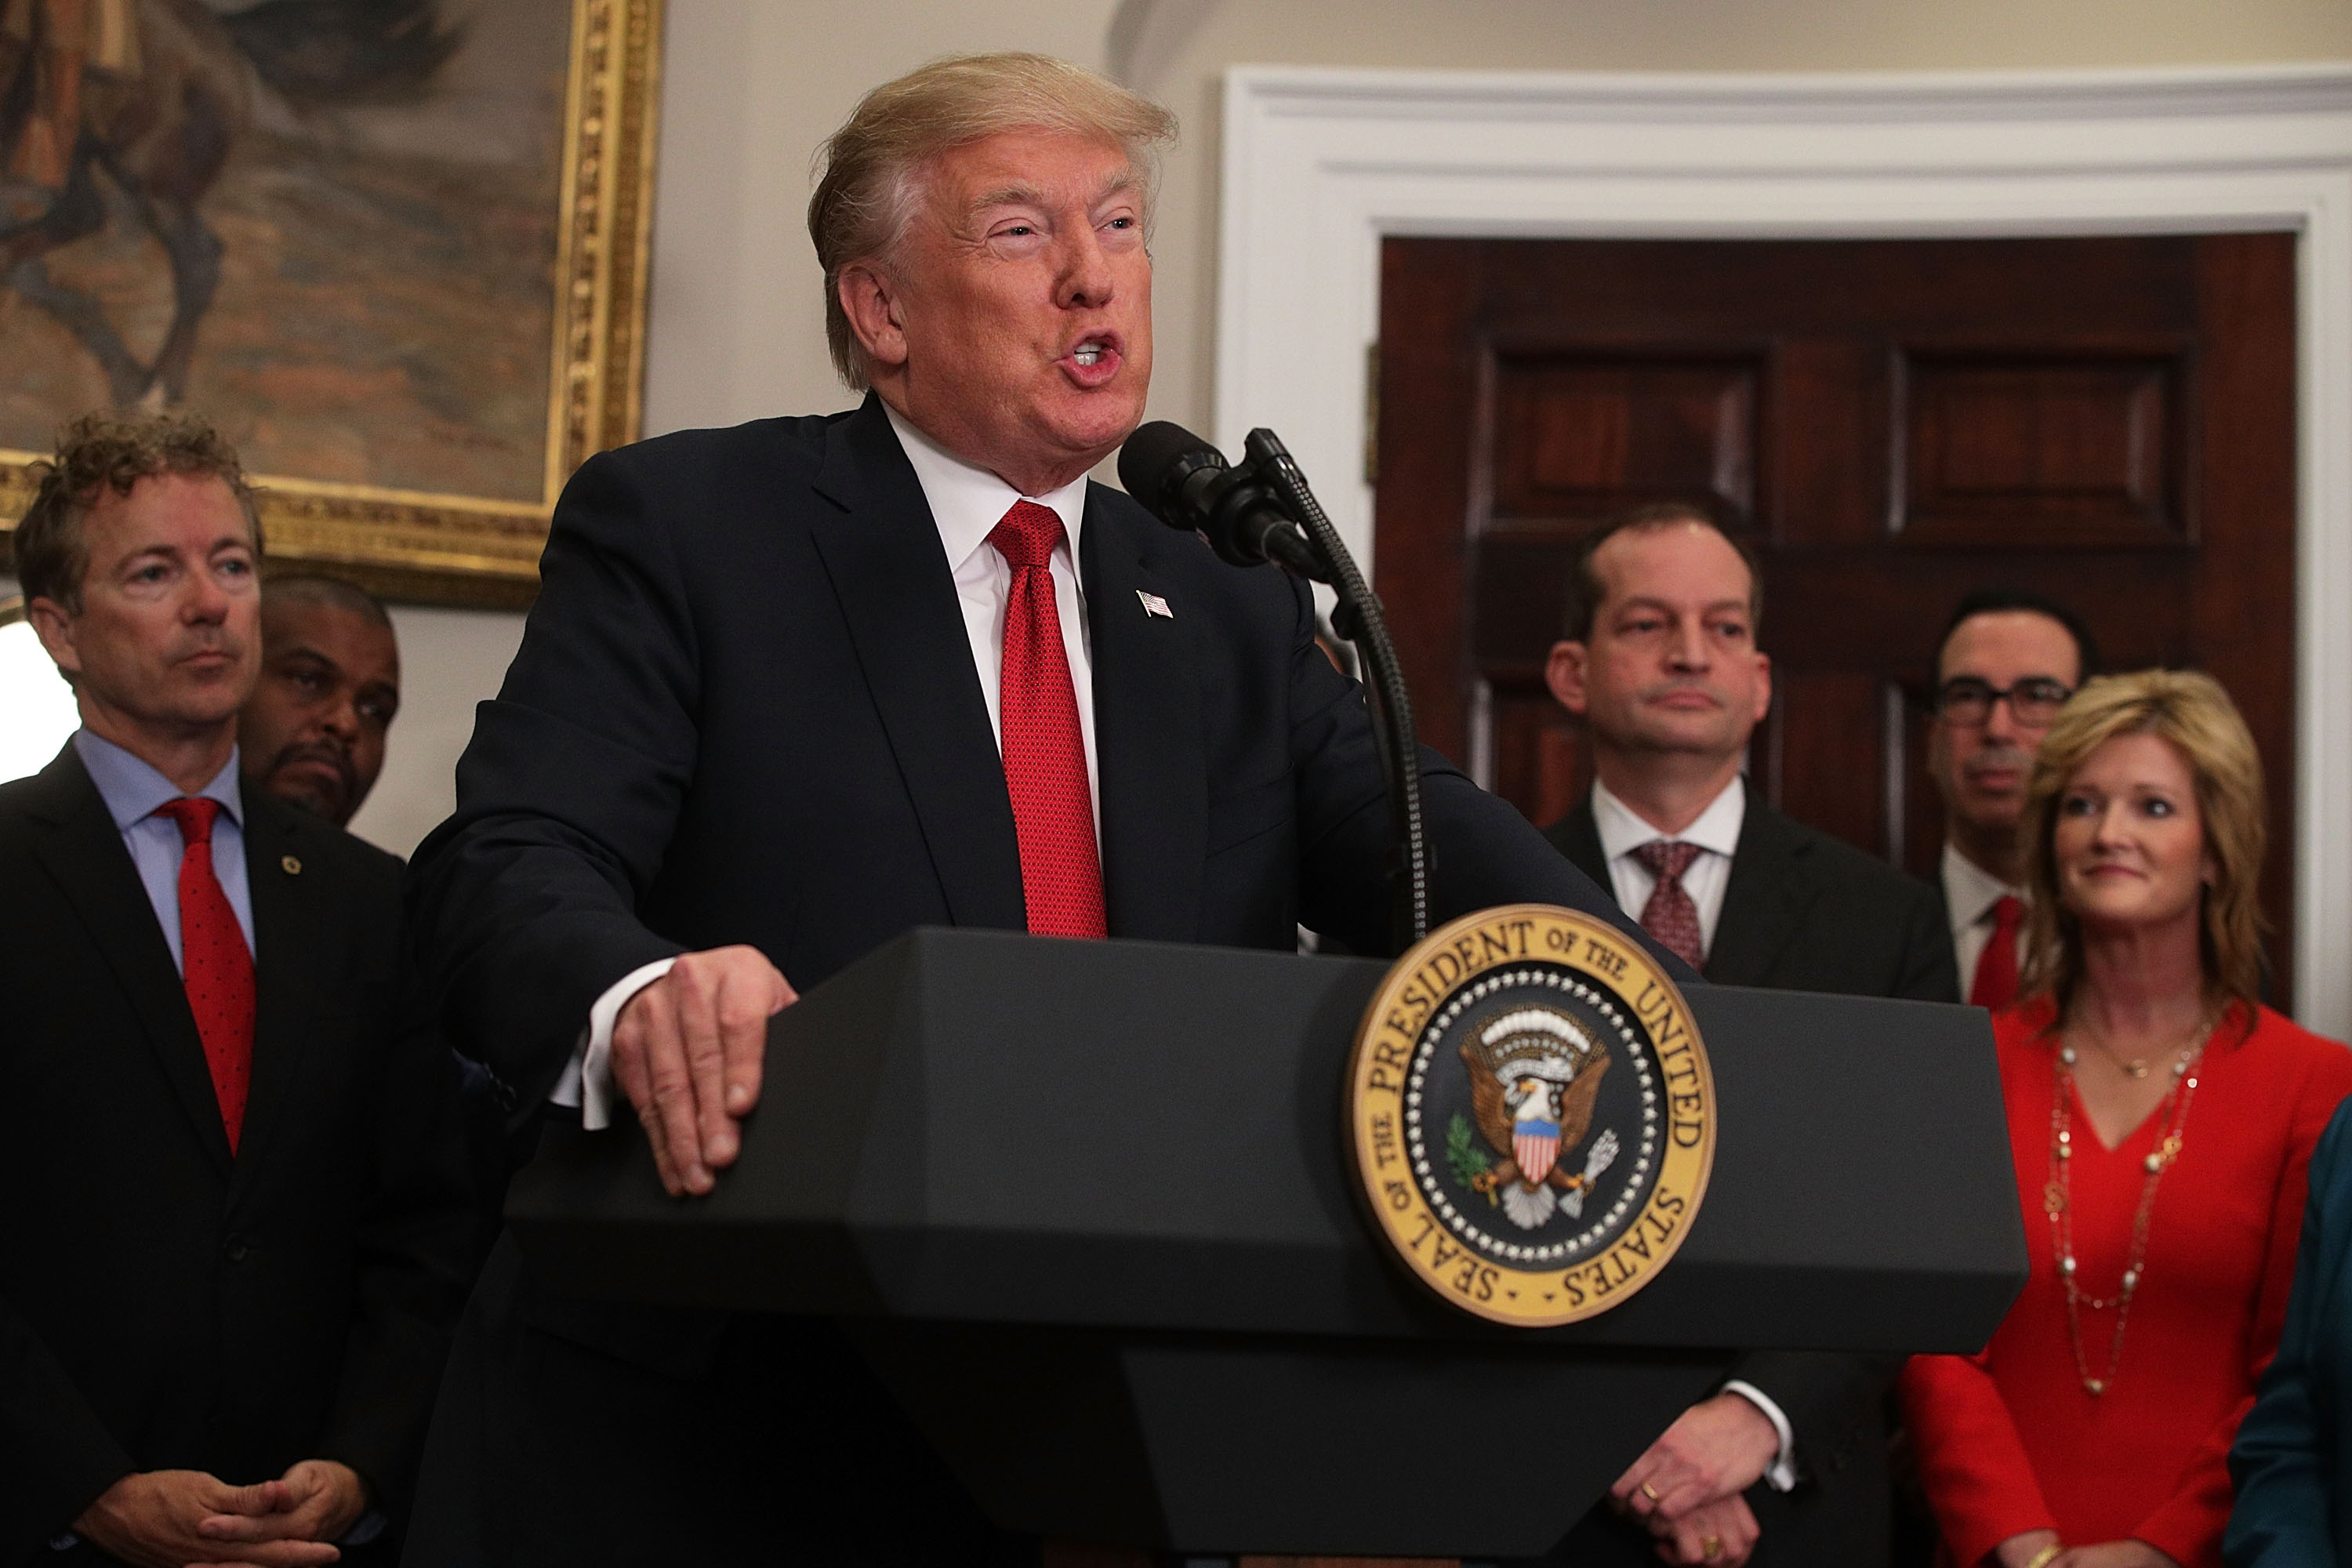 WASHINGTON, DC - OCTOBER 12:  U.S. President Donald Trump speaks as Sen. Rand Paul (R-KY) (L), Secretary of Labor Alexander Acosta (3rd R) and Secretary of the Treasury Steven Mnuchin (2nd R) look on during an event in the Roosevelt Room of the White House October 12, 2017 in Washington, DC. President Trump signed the executive order to loosen restrictions on Affordable Care Act  to promote healthcare choice and competition.   (Photo by Alex Wong/Getty Images)